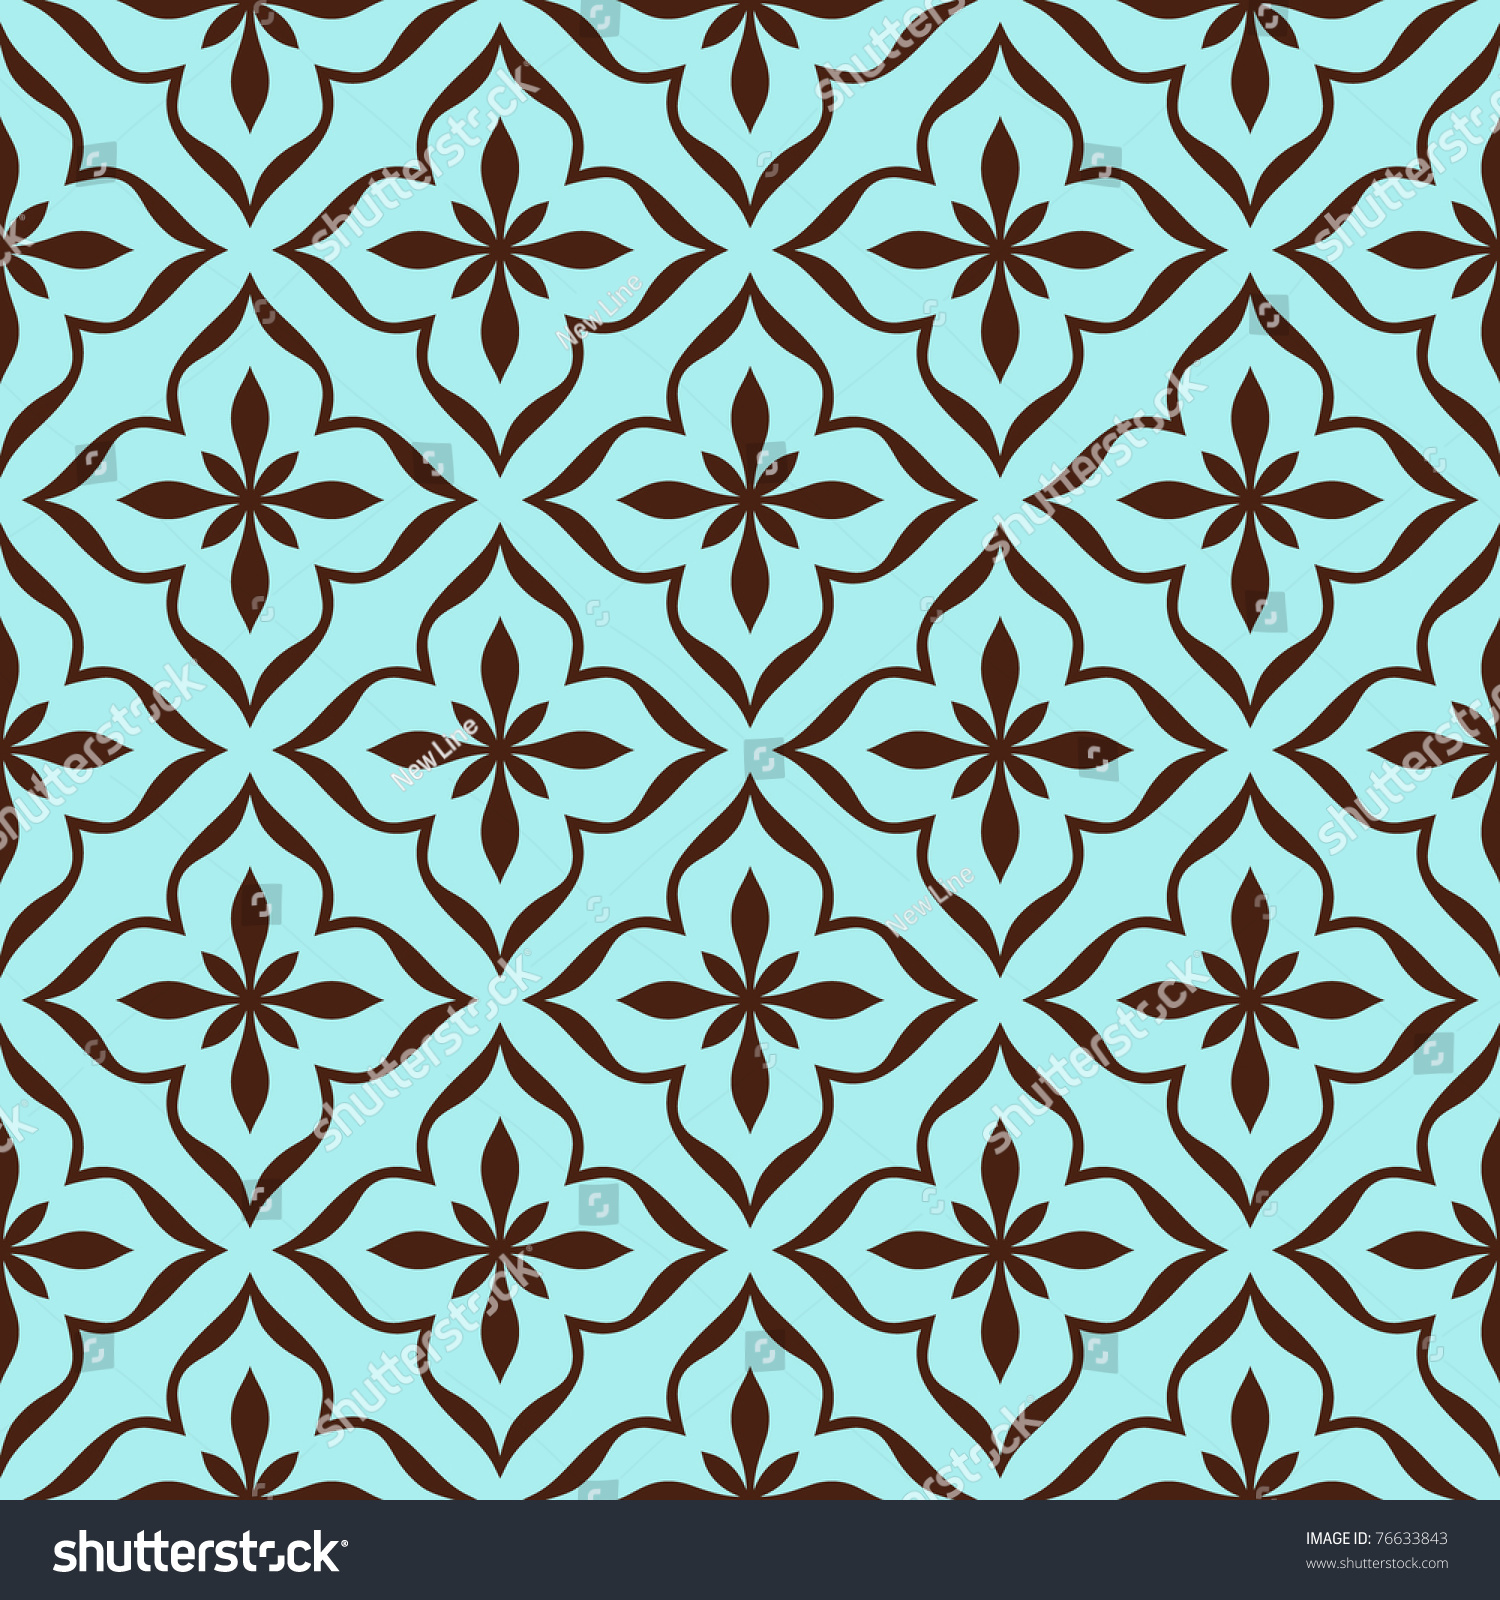 Moroccan geometric pattern royalty free stock photos image 13547078 - Ornamental Pattern Seamless Moroccan Background Stock Vector 1500x1600